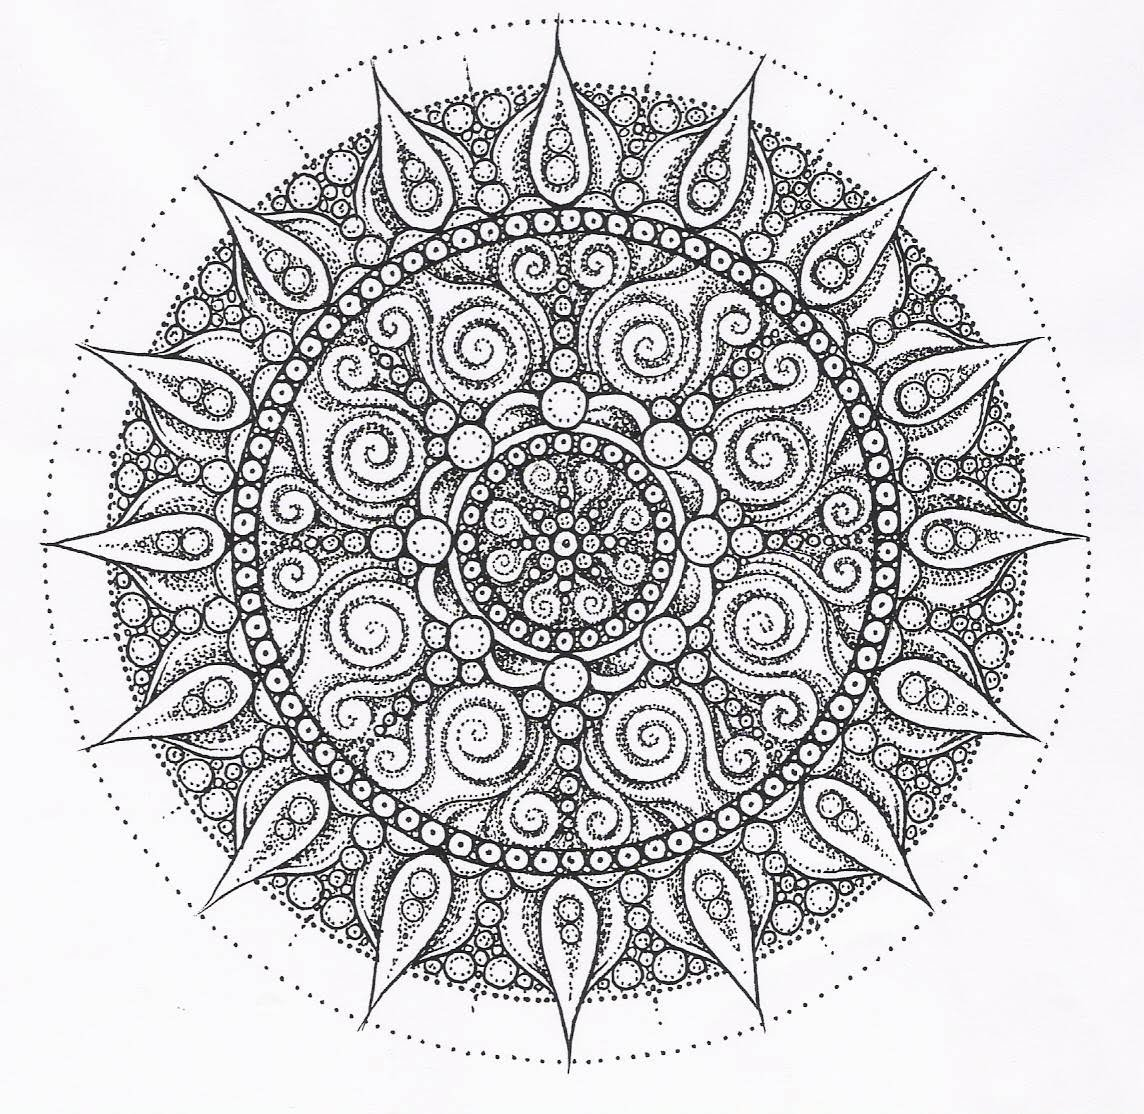 abstract coloring pages to print - Hard Coloring Pages Others ColoringPedia